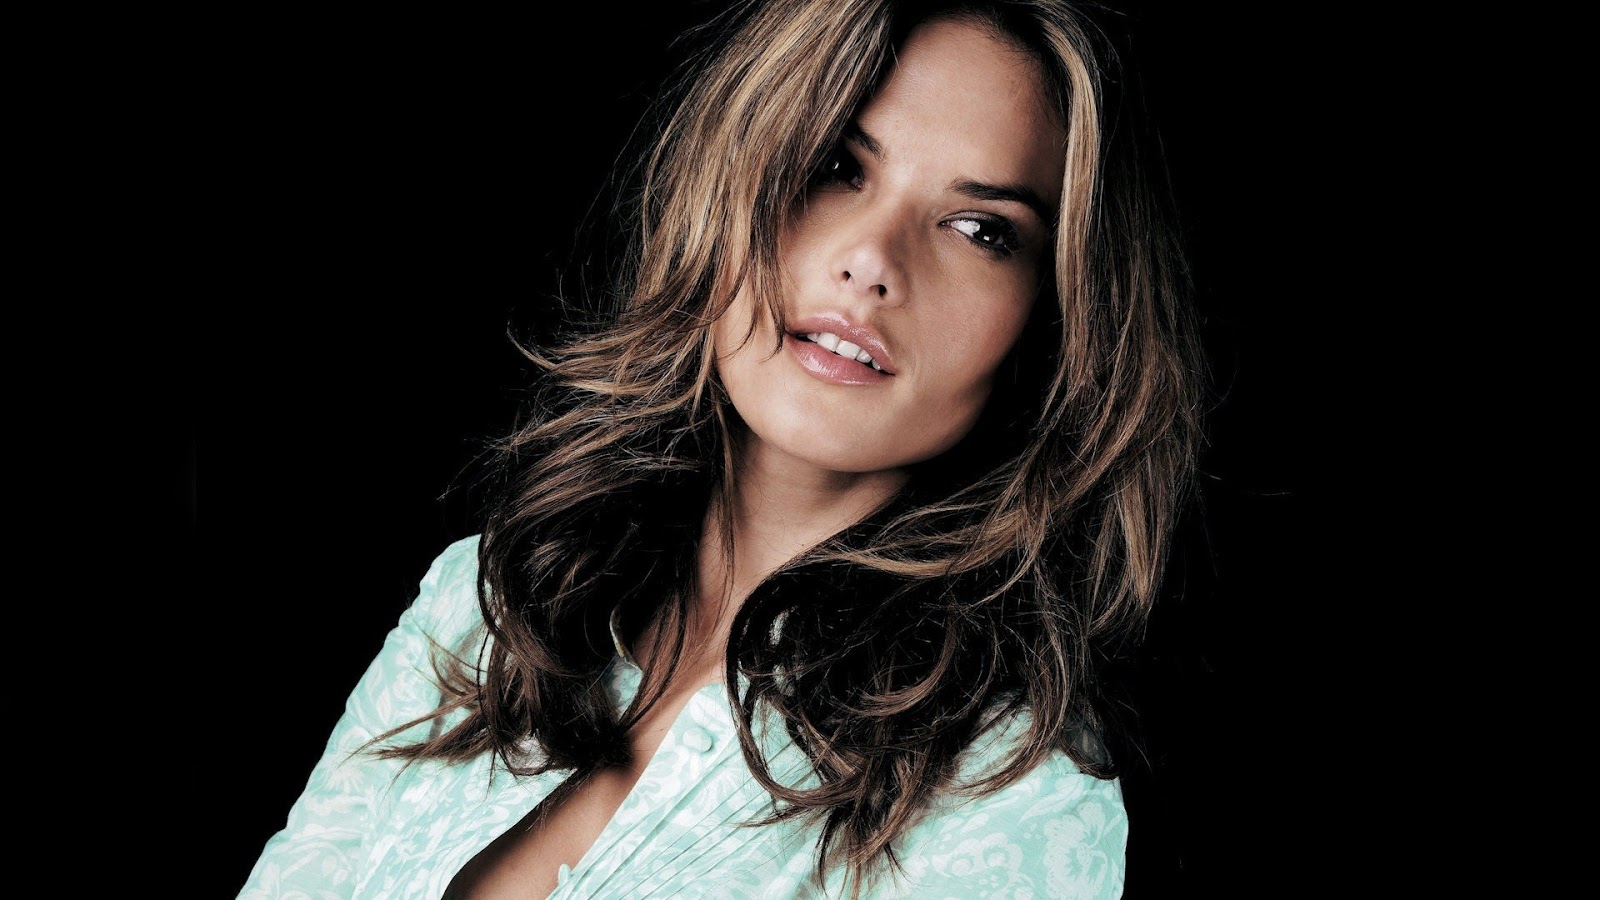 alessandra ambrosio wallpapers - photo #24